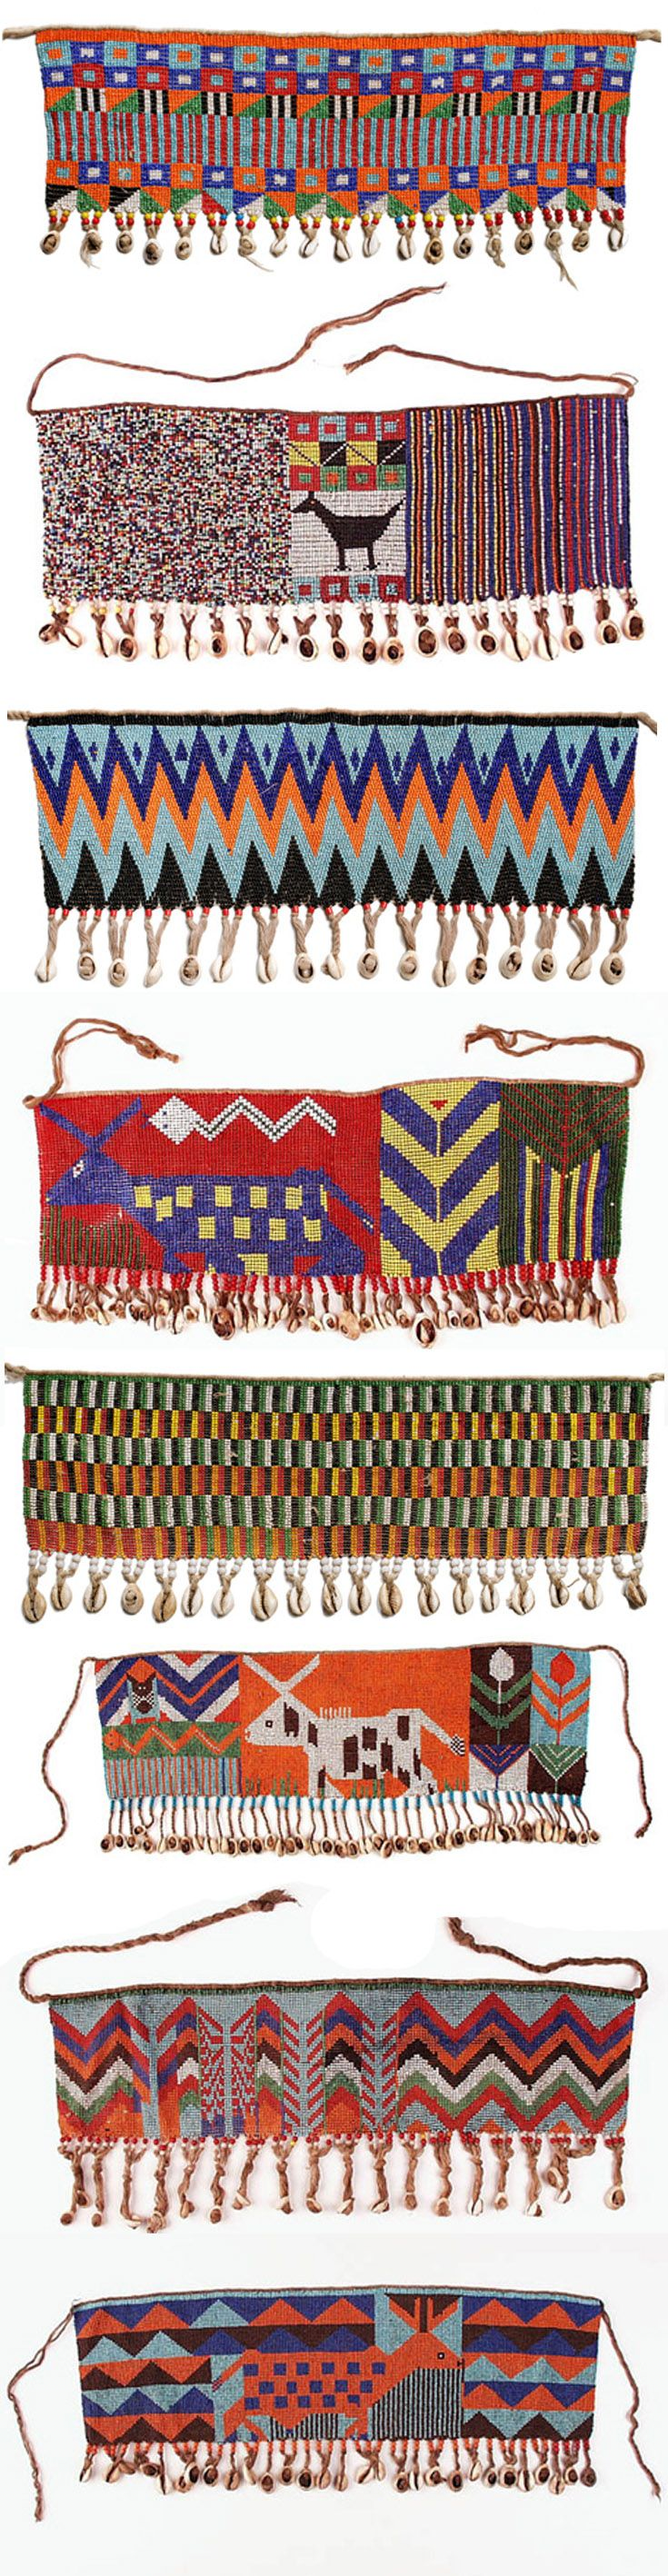 Africa | Women aprons (cache-sexe) from the Kirdi people of Northern Cameroon | Glass beads, cowrie shells and fibre | 20th century